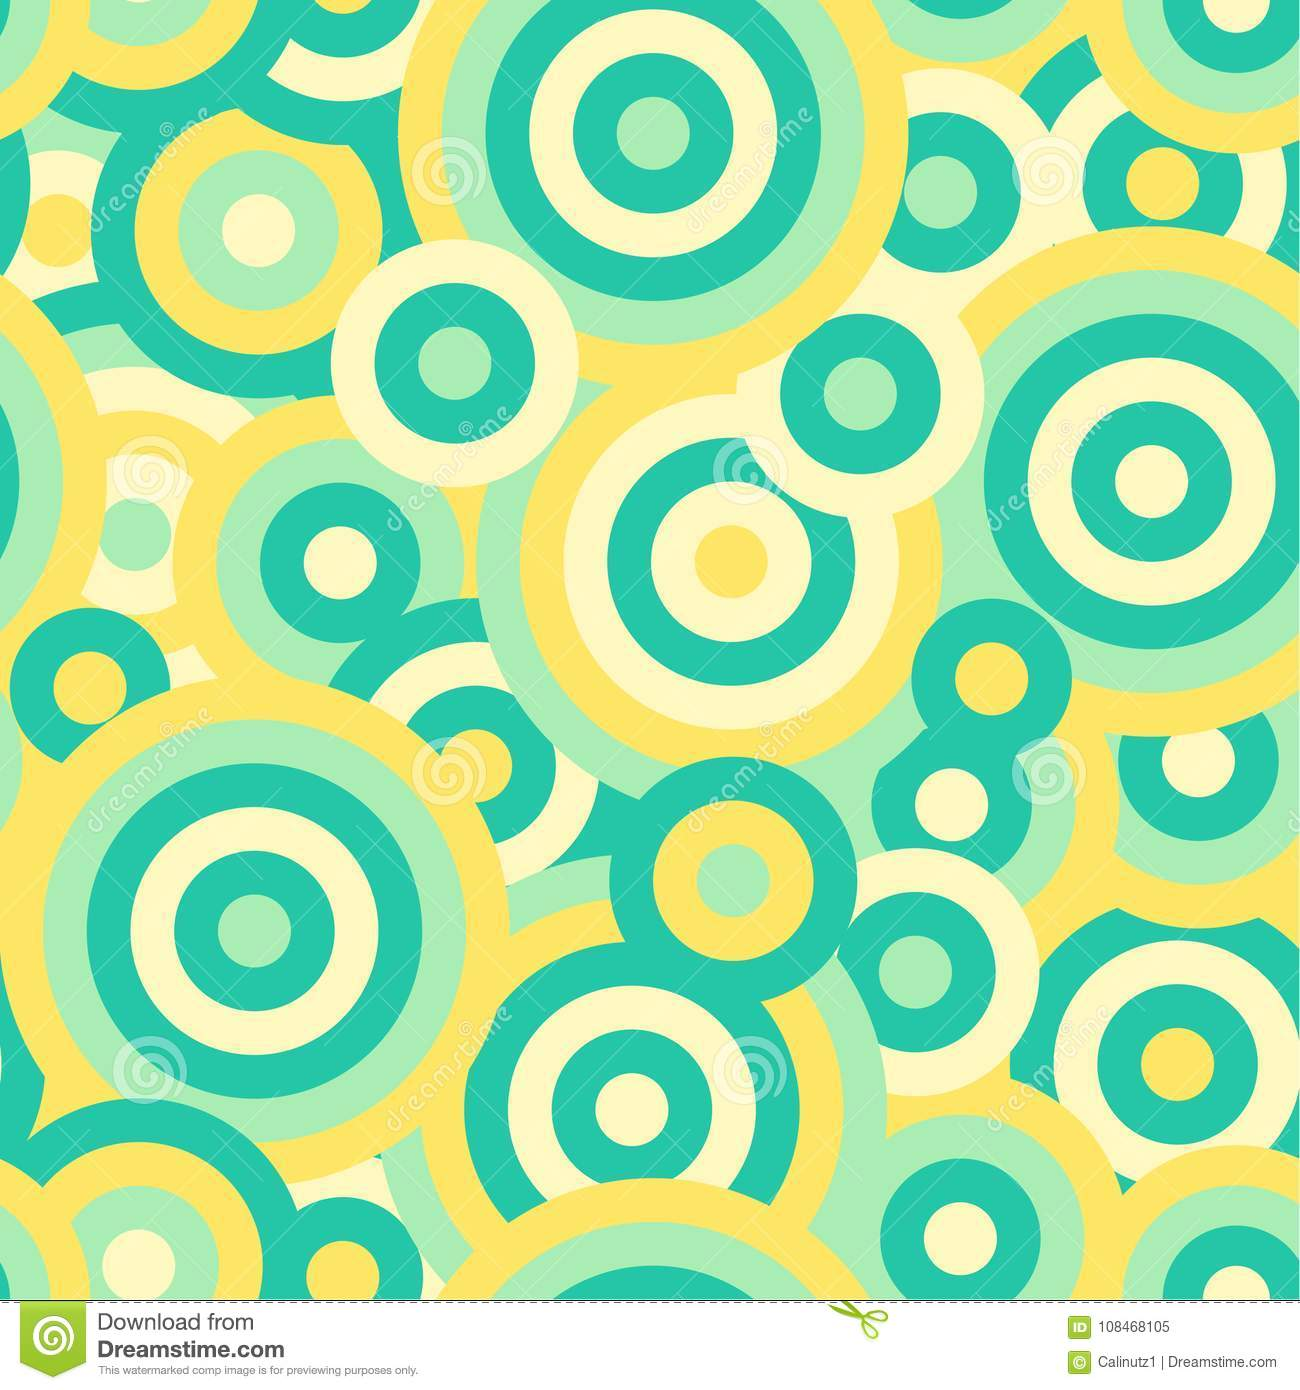 Colorful circles seamless repetitive vector pattern texture background